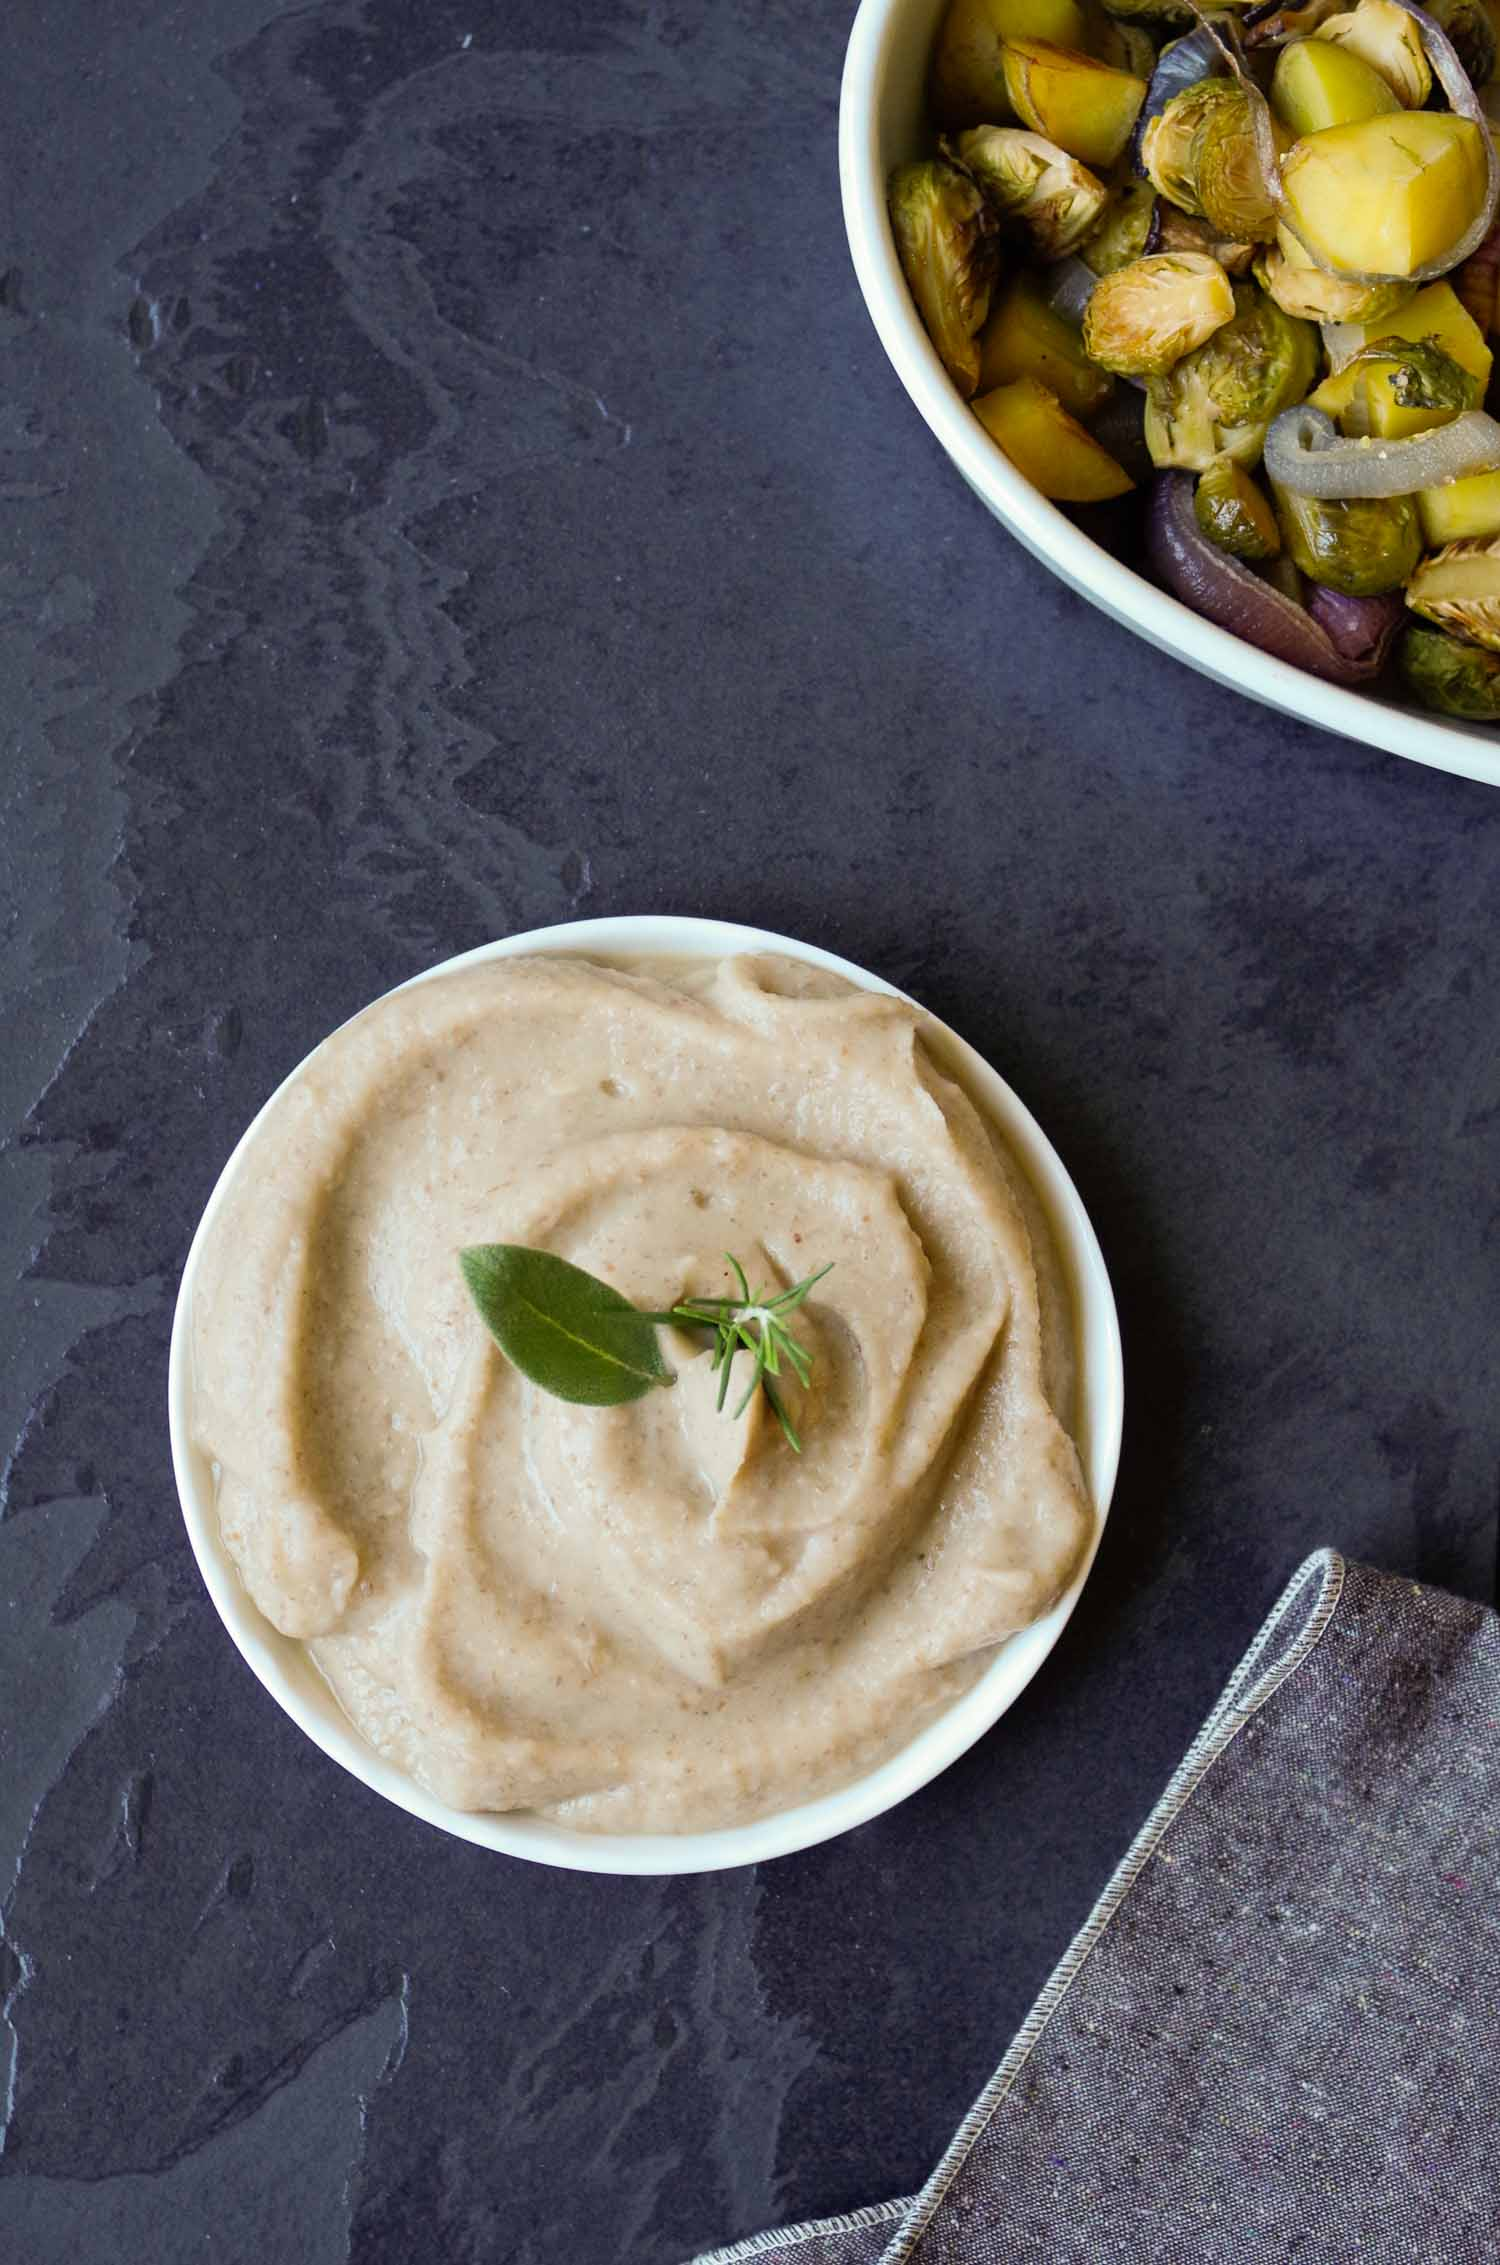 QUICK VEGAN ROSEMARY SAGE WHITE BEAN PUREE GOES GREAT WITH ROASTED VEGETABLES! BY BEAUTIFUL INGREDIENT.